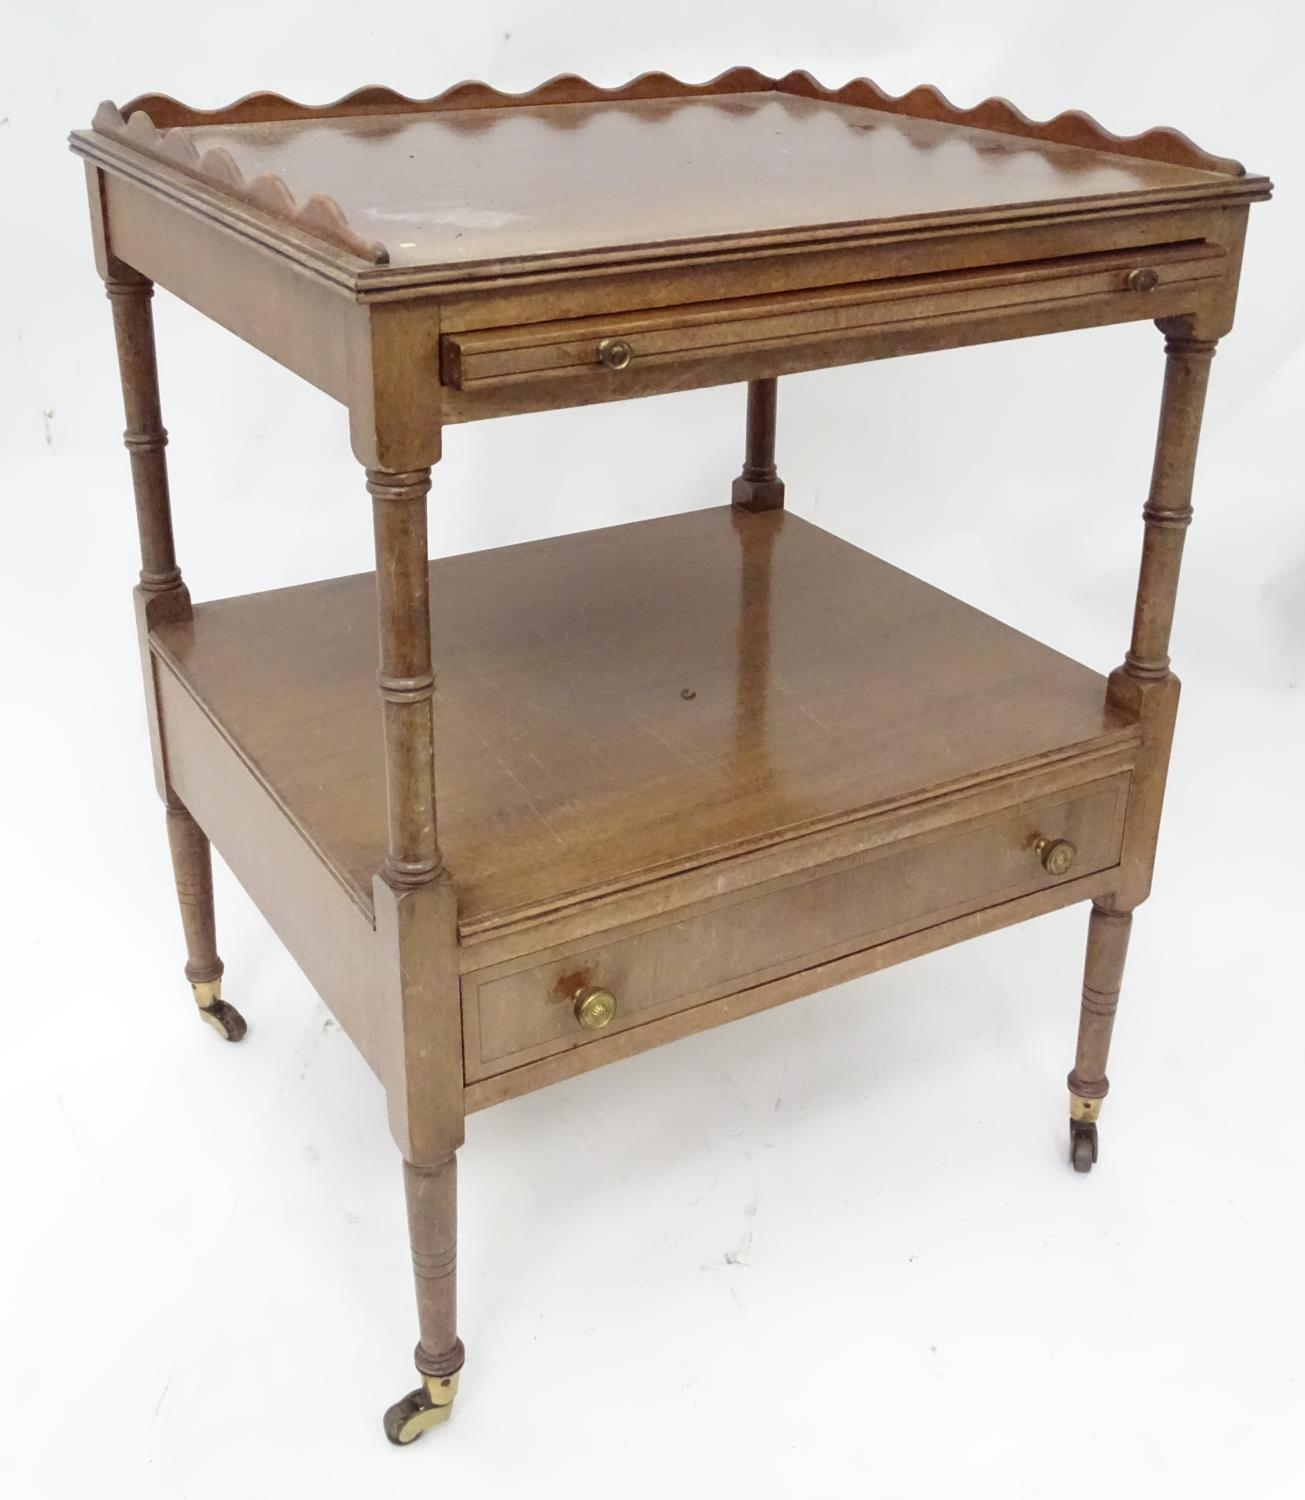 A small mahogany etagere Please Note - we do not make reference to the condition of lots within